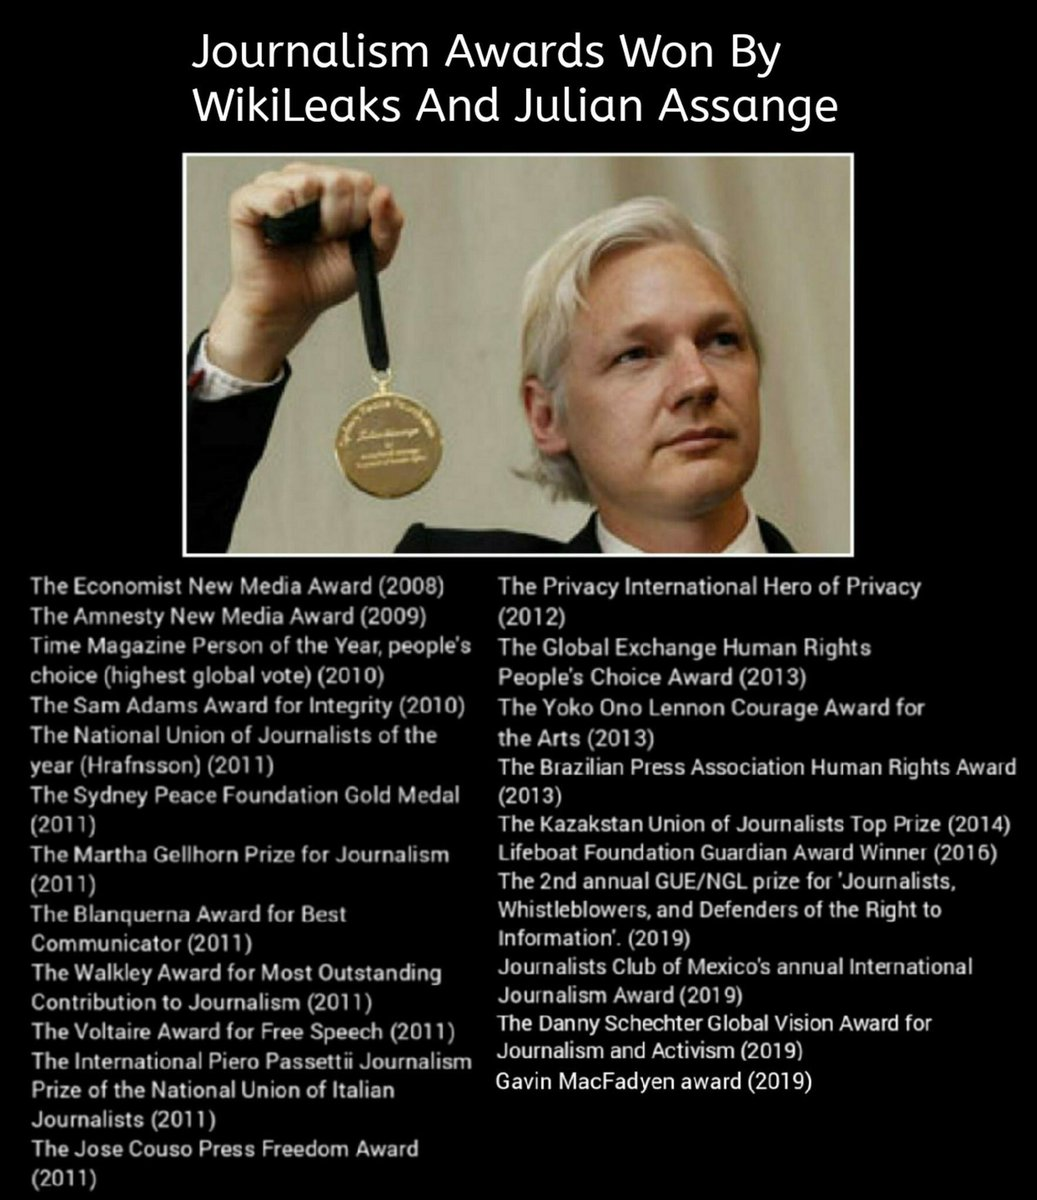 Most complete list of Journalistic Awards won by #Wikileaks and #JulianAssange <br>http://pic.twitter.com/Nu78wsmiOP